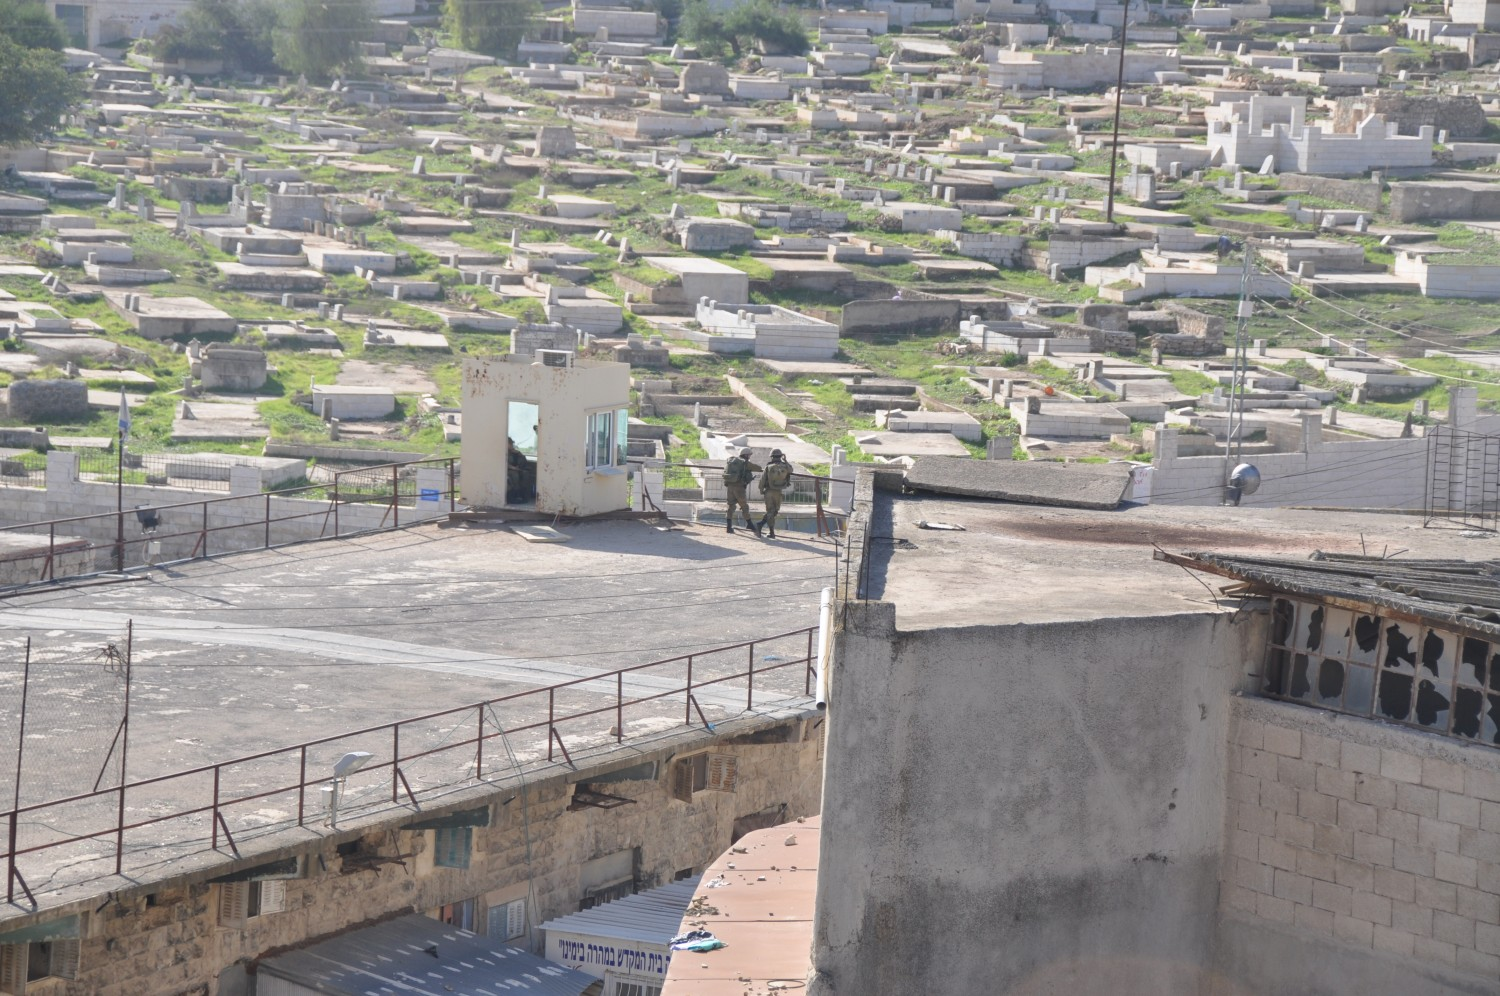 Soldiers guarding over the muslim cemetary